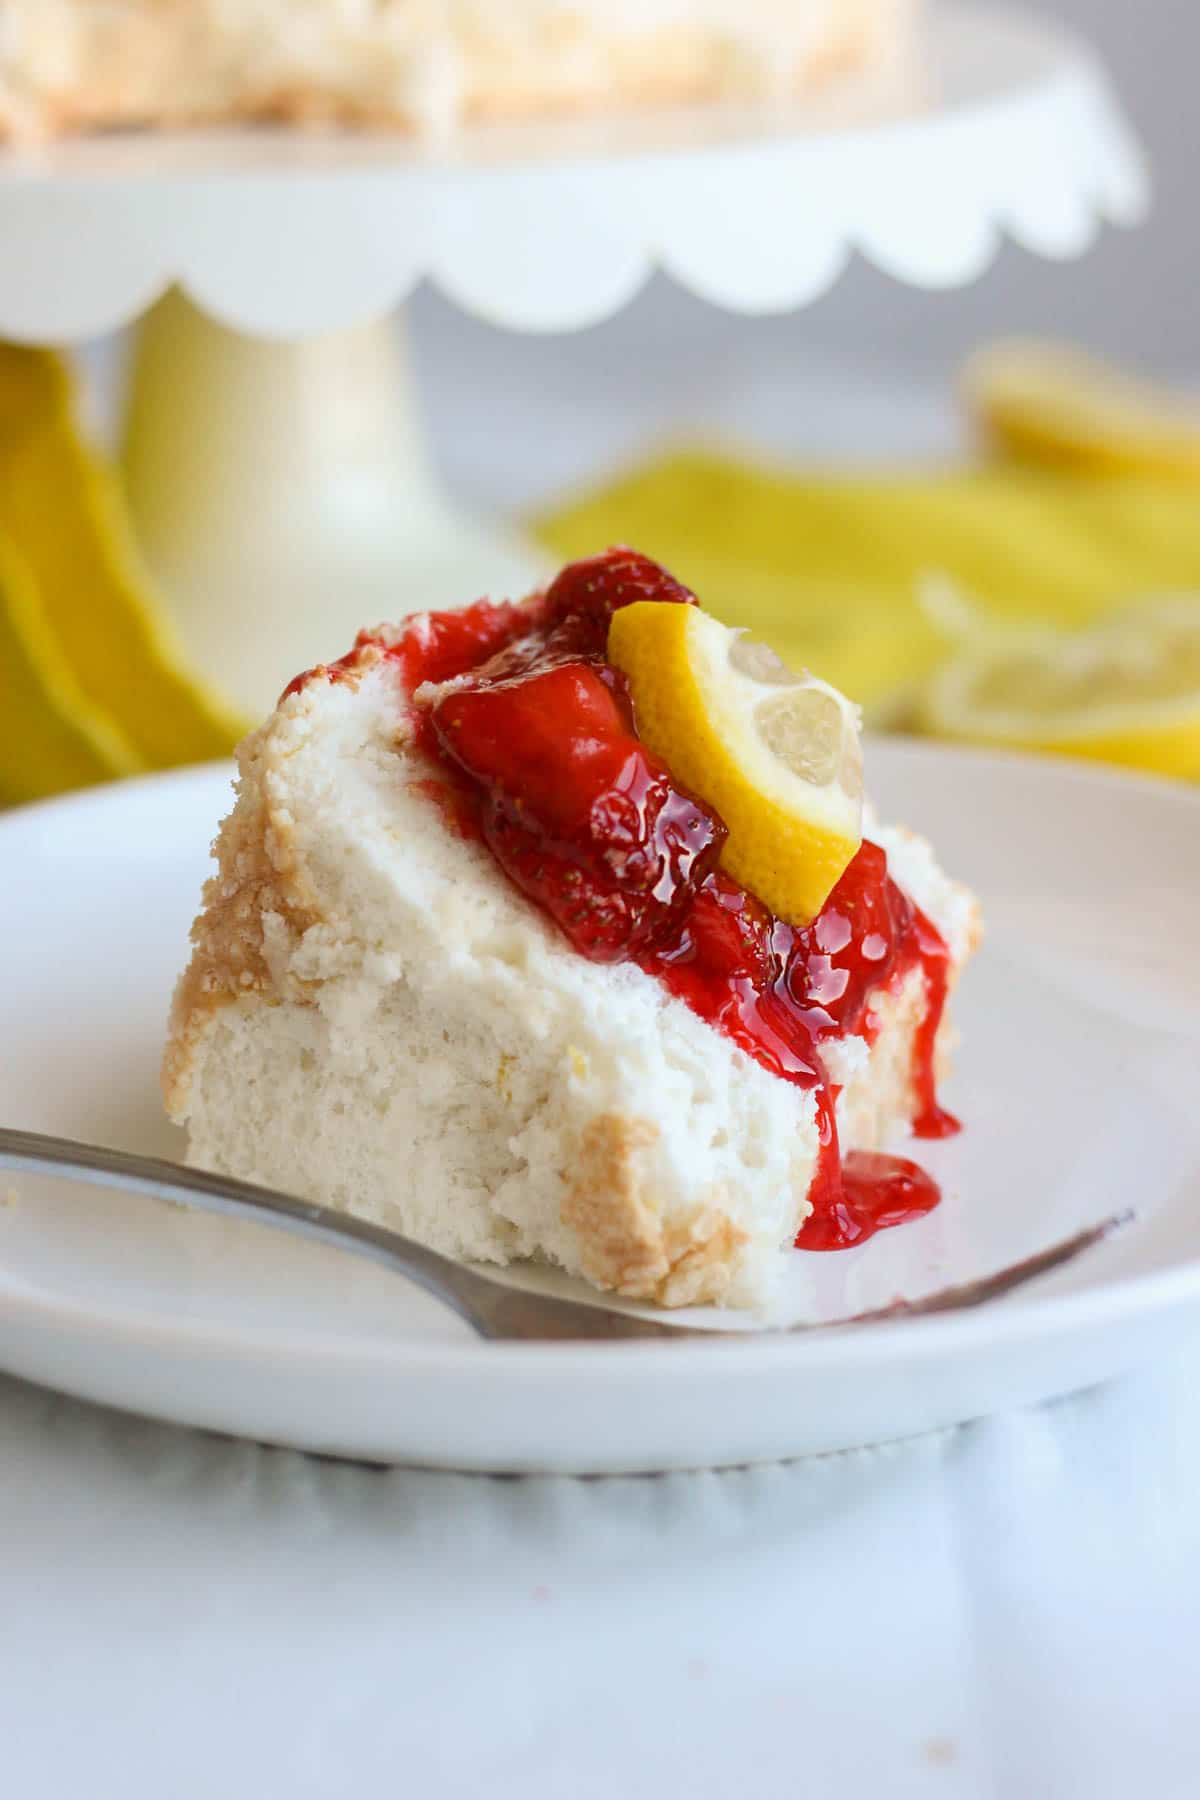 Is Angel Food Cake Naturally Gluten Free